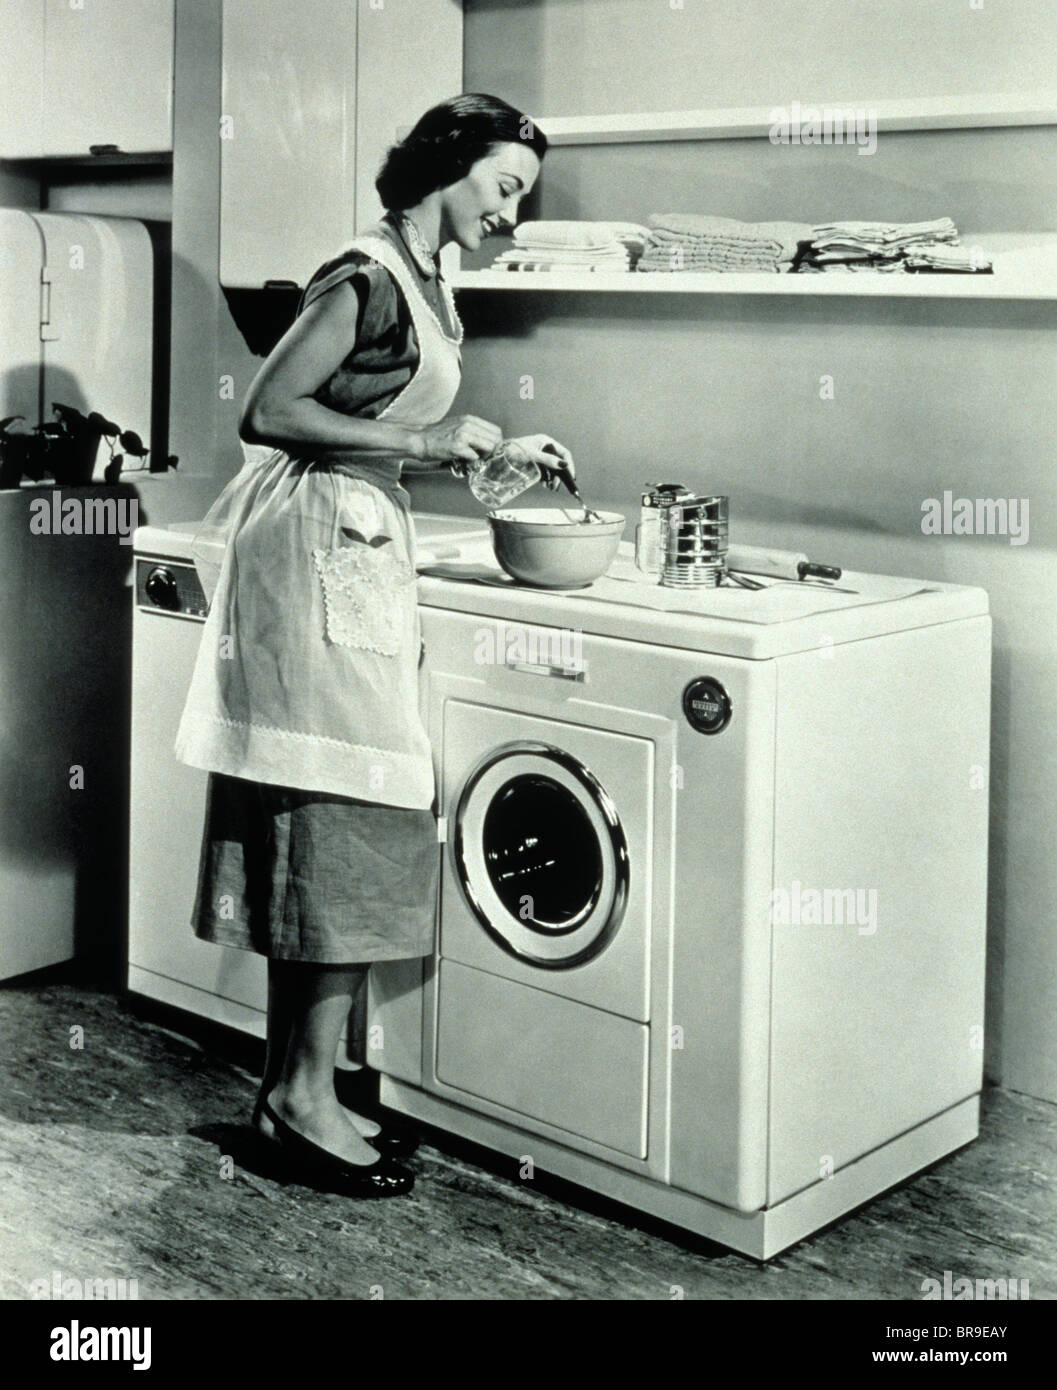 Retro Washing Machine Stock Photos Amp Retro Washing Machine